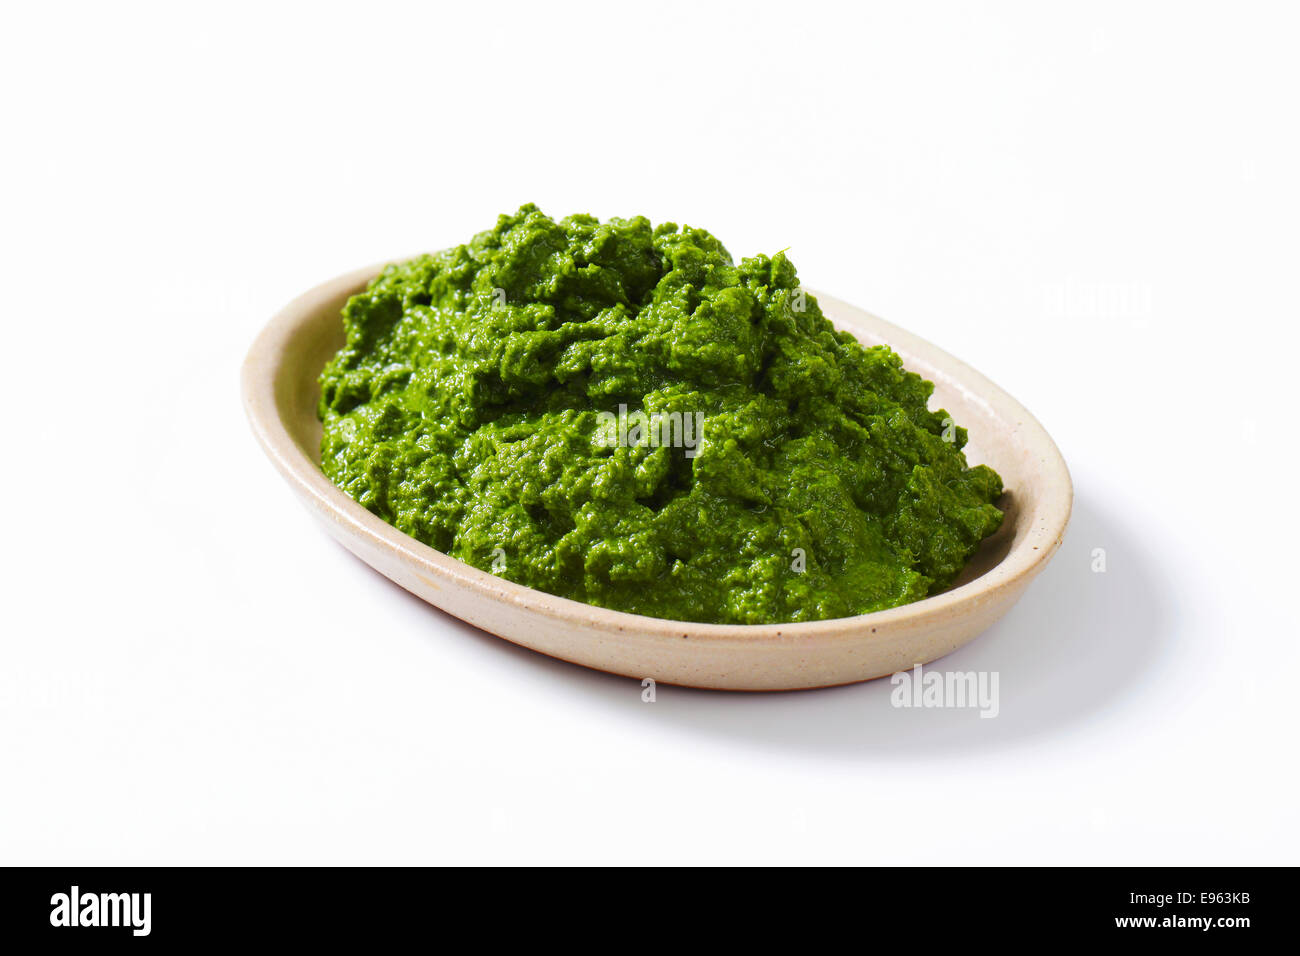 Plate of homemade spinach puree - Stock Image